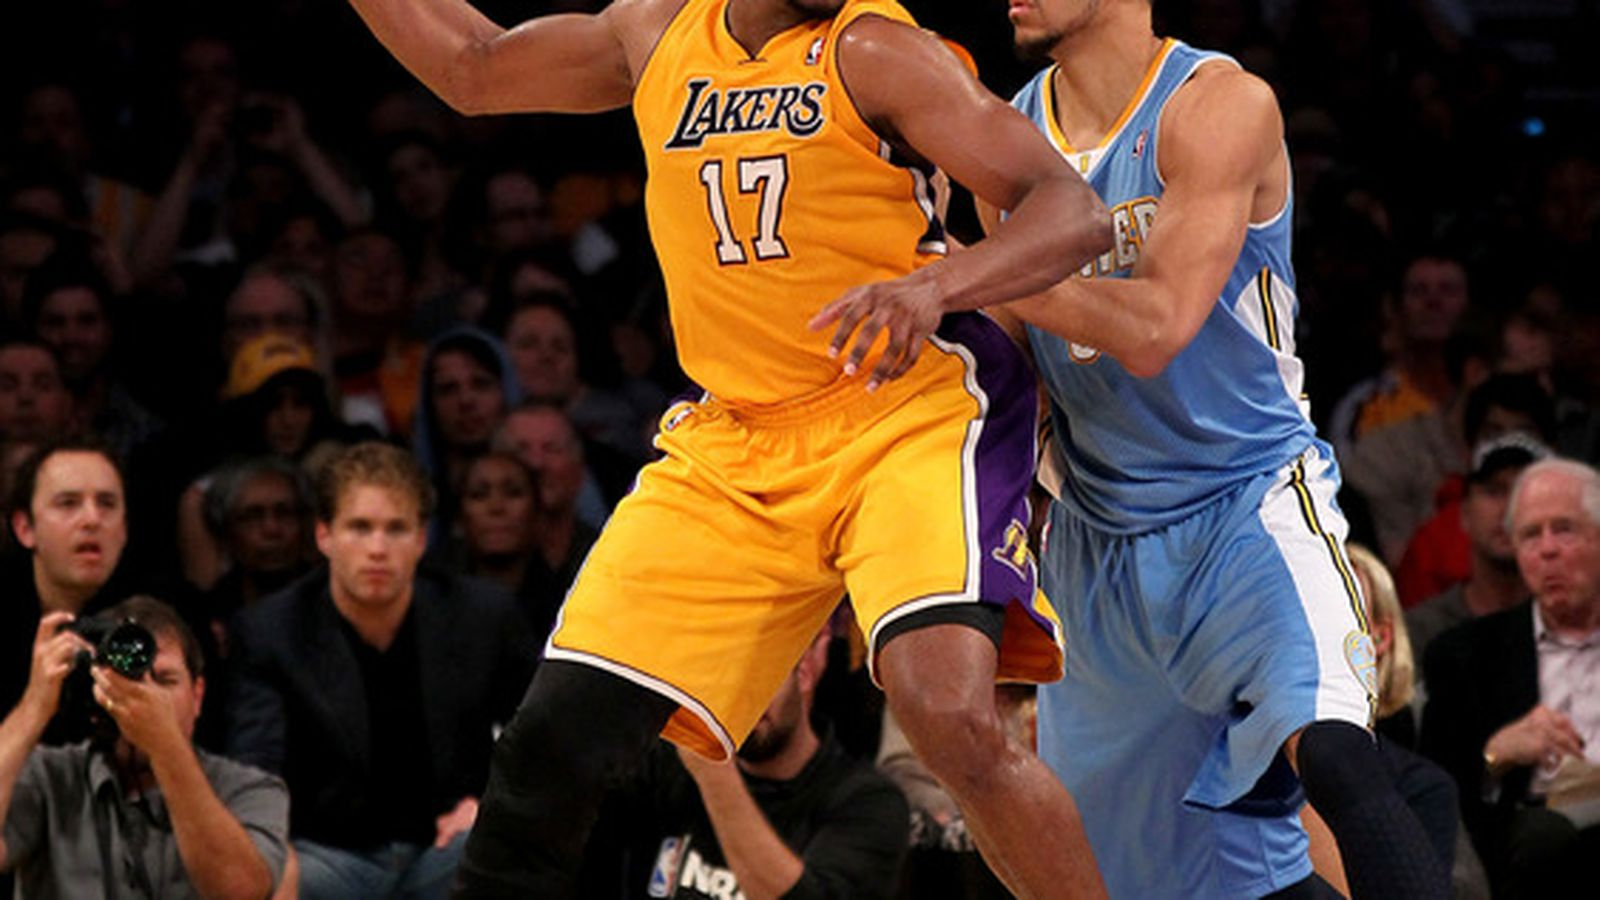 The Los Angeles Lakers take on the Denver Nuggets at the Valley View Casino Center